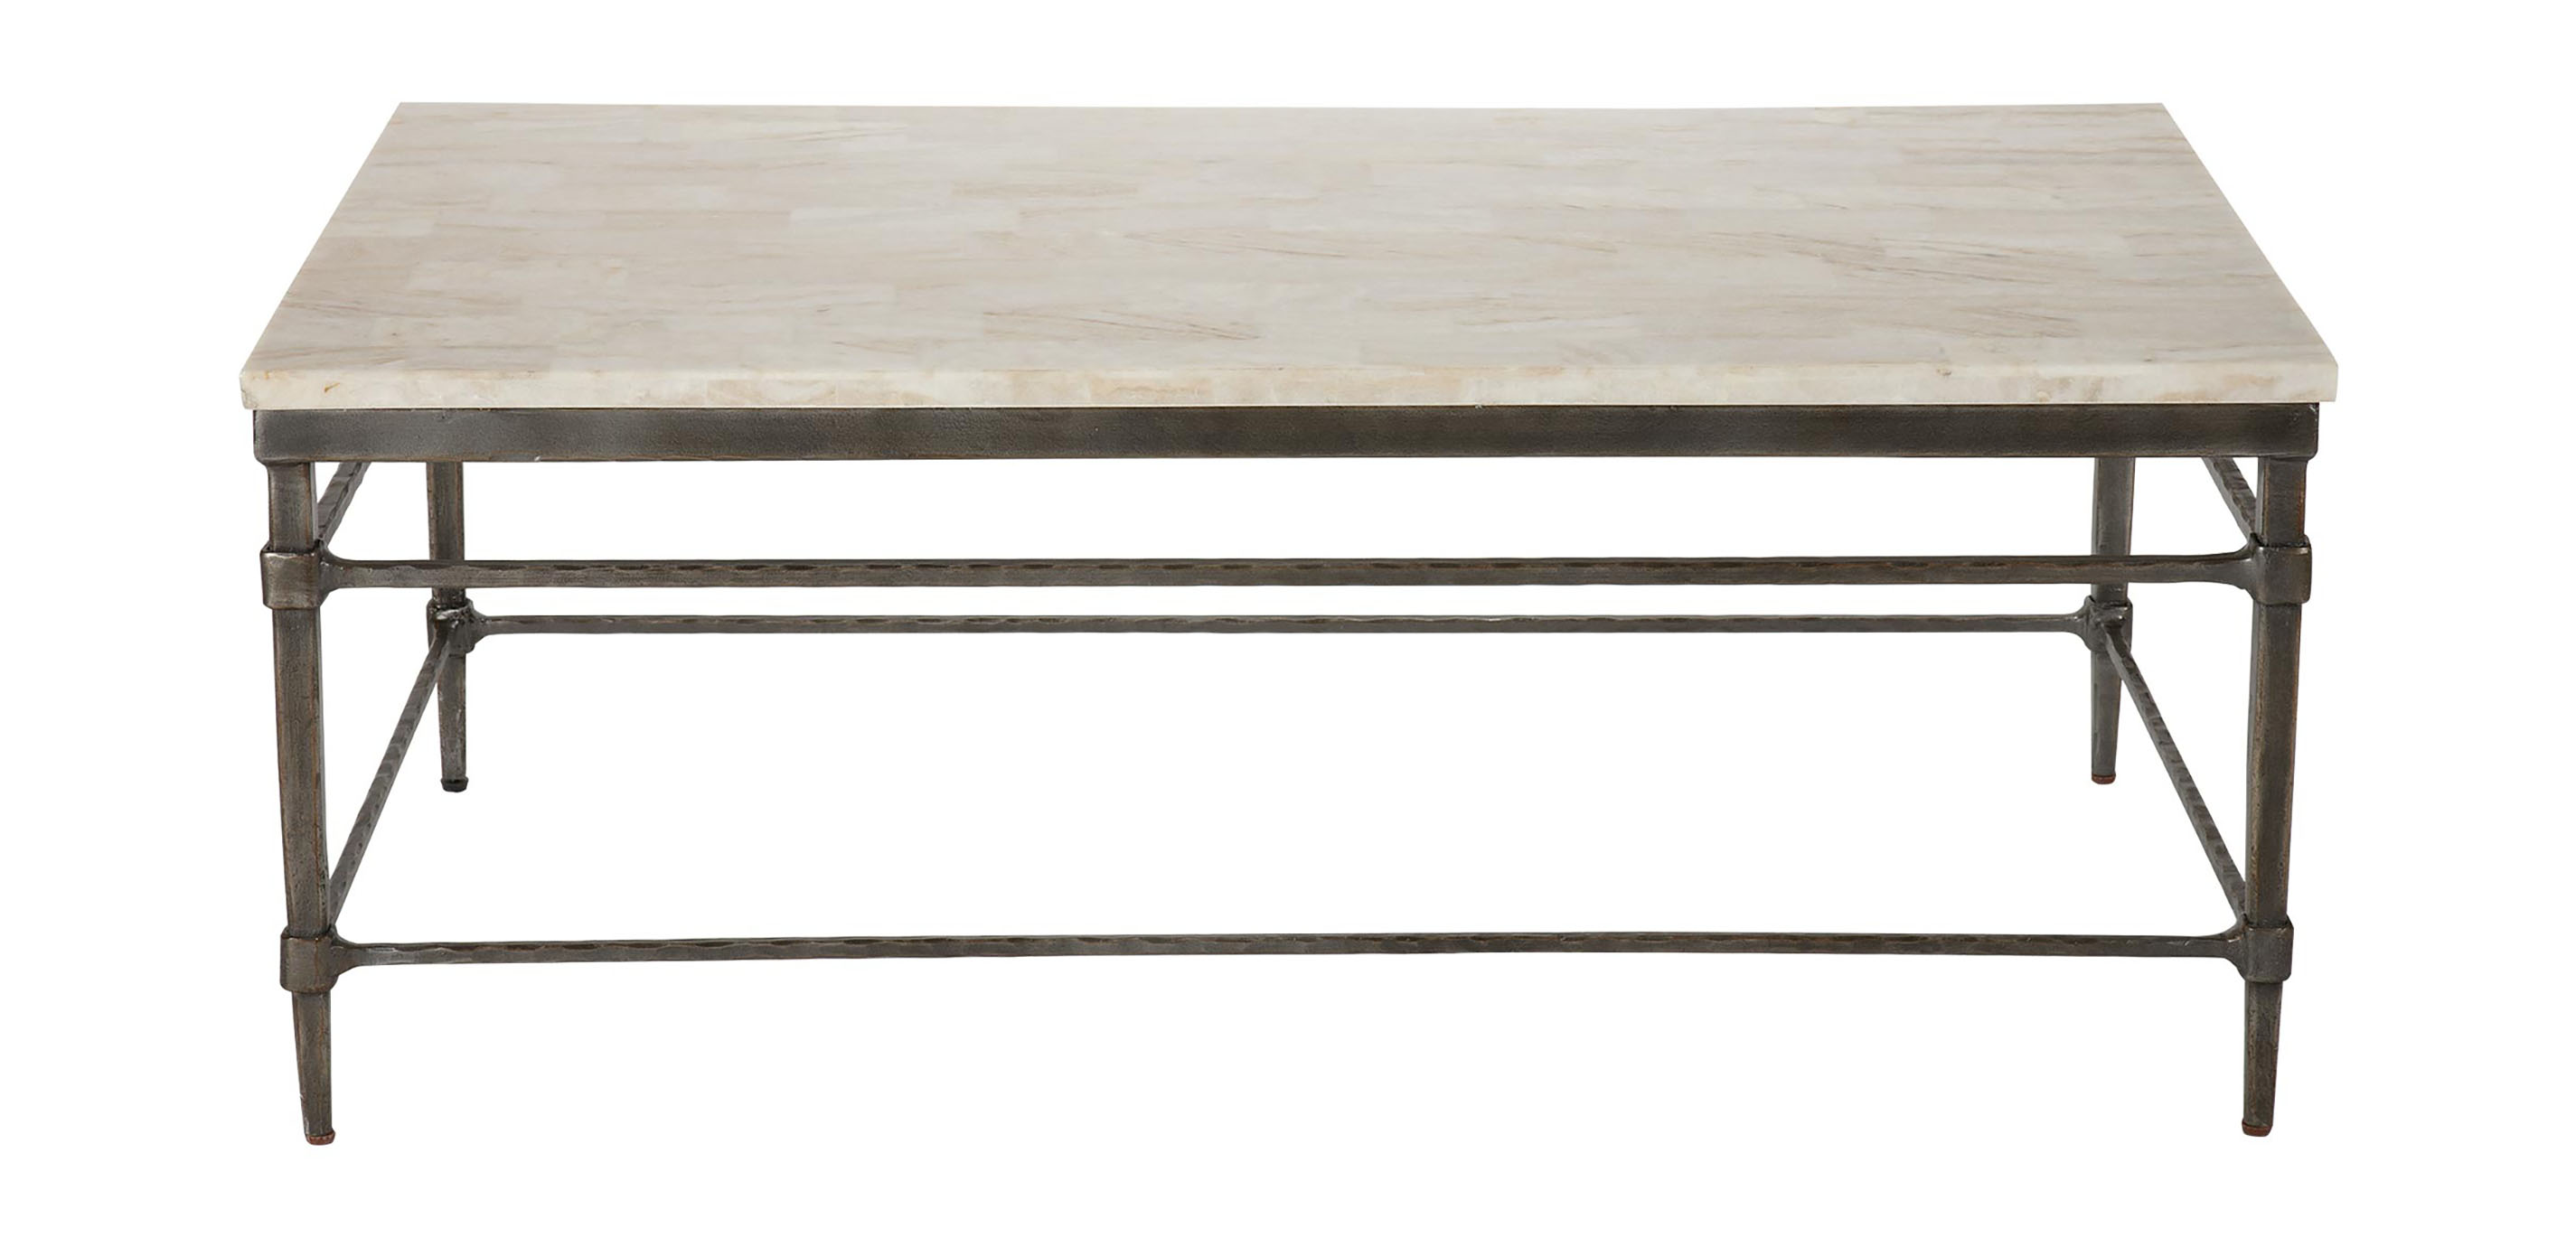 Stone Top Coffee Table Images